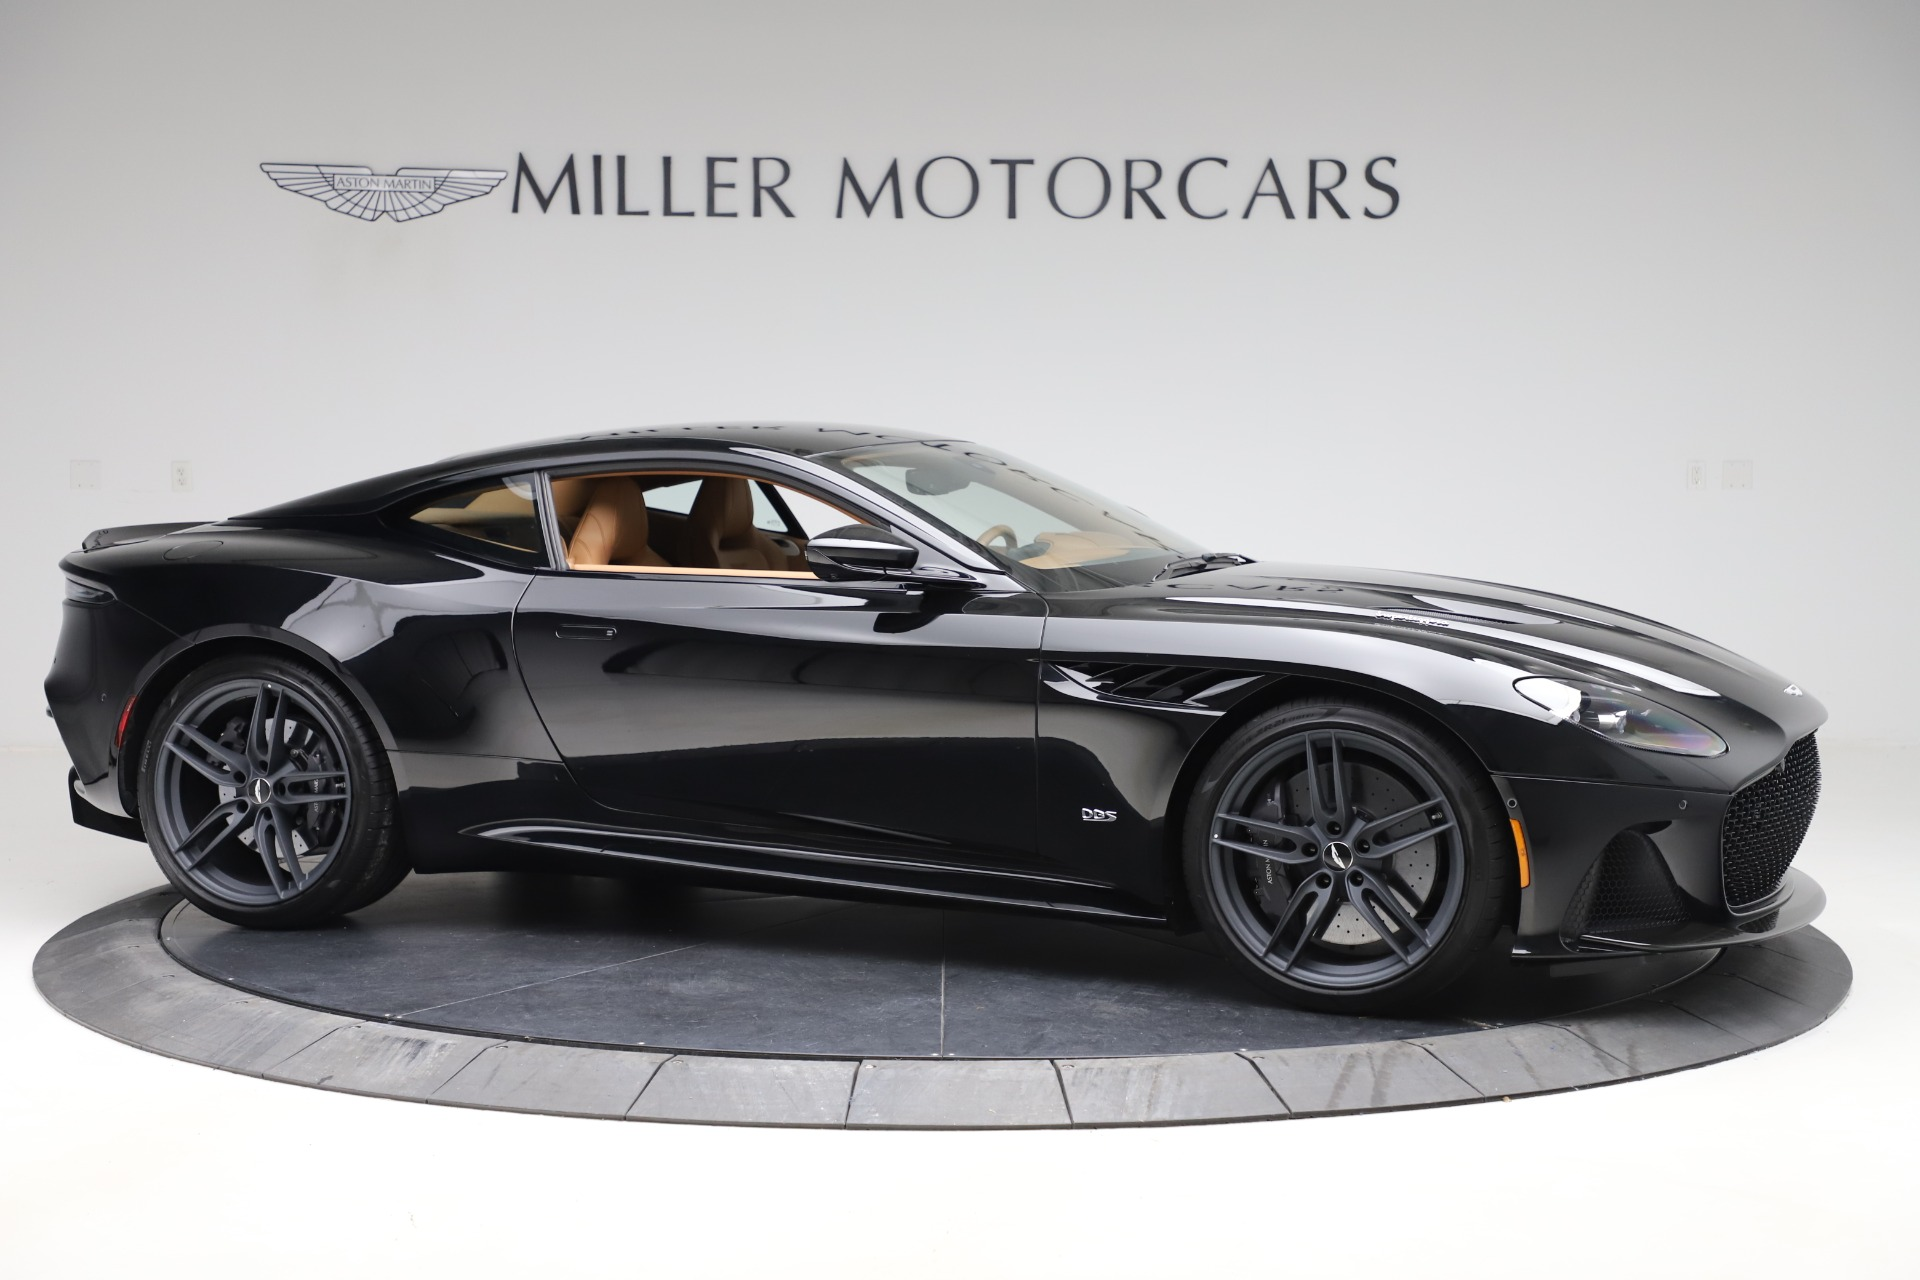 New 2019 Aston Martin Dbs Superleggera Coupe For Sale Miller Motorcars Stock A1431